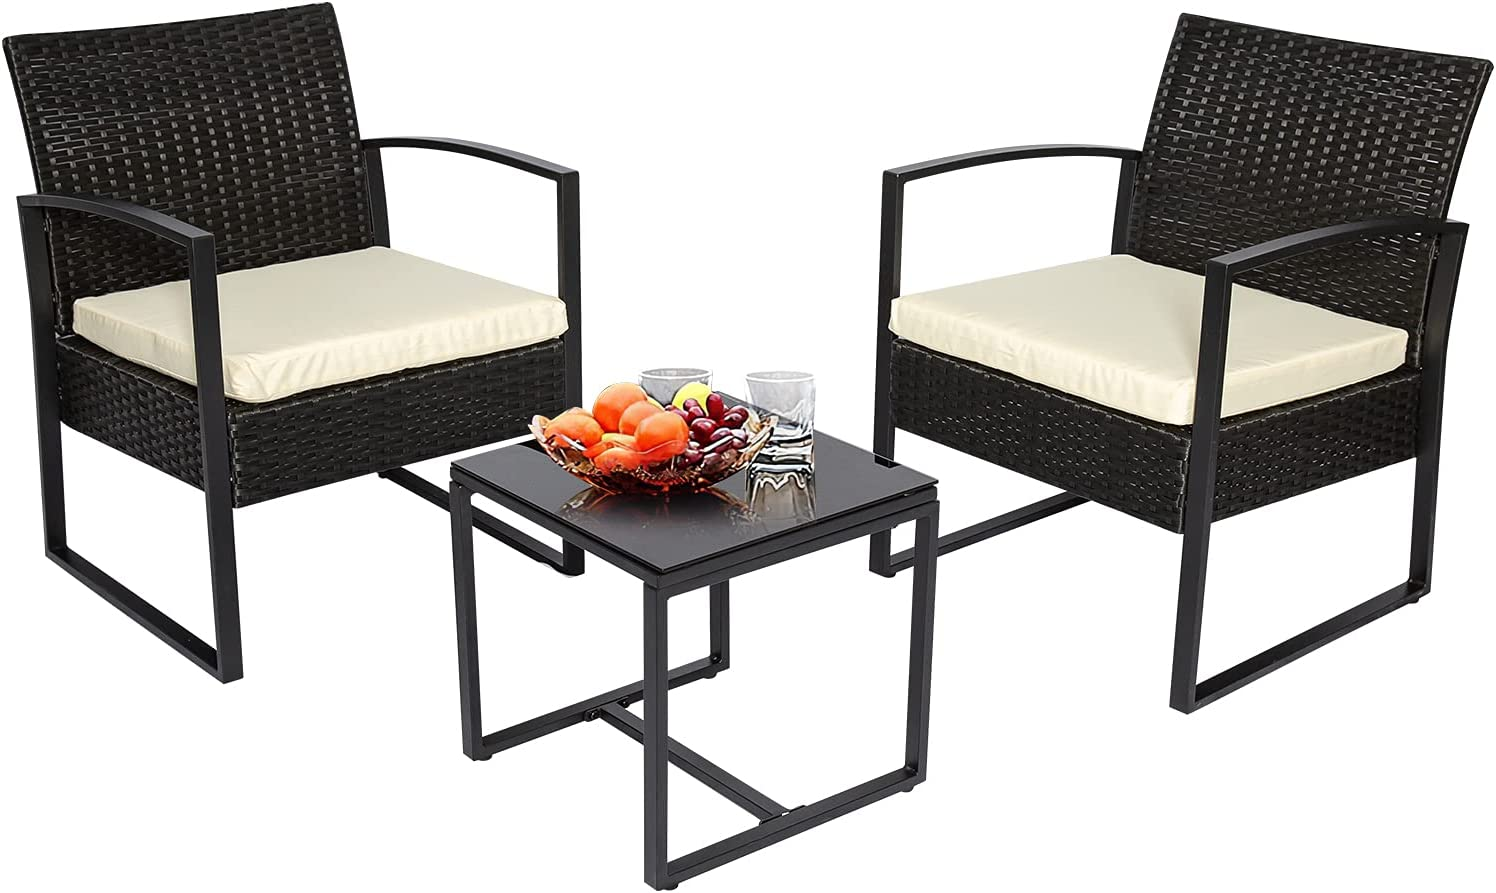 3 Pieces Patio Furniture Set, Outdoor Indoor Furniture Rattan Wicker Sets, Conversation Patio Set with Table for Garden, Lawn, Balcony (Beige Cushion)